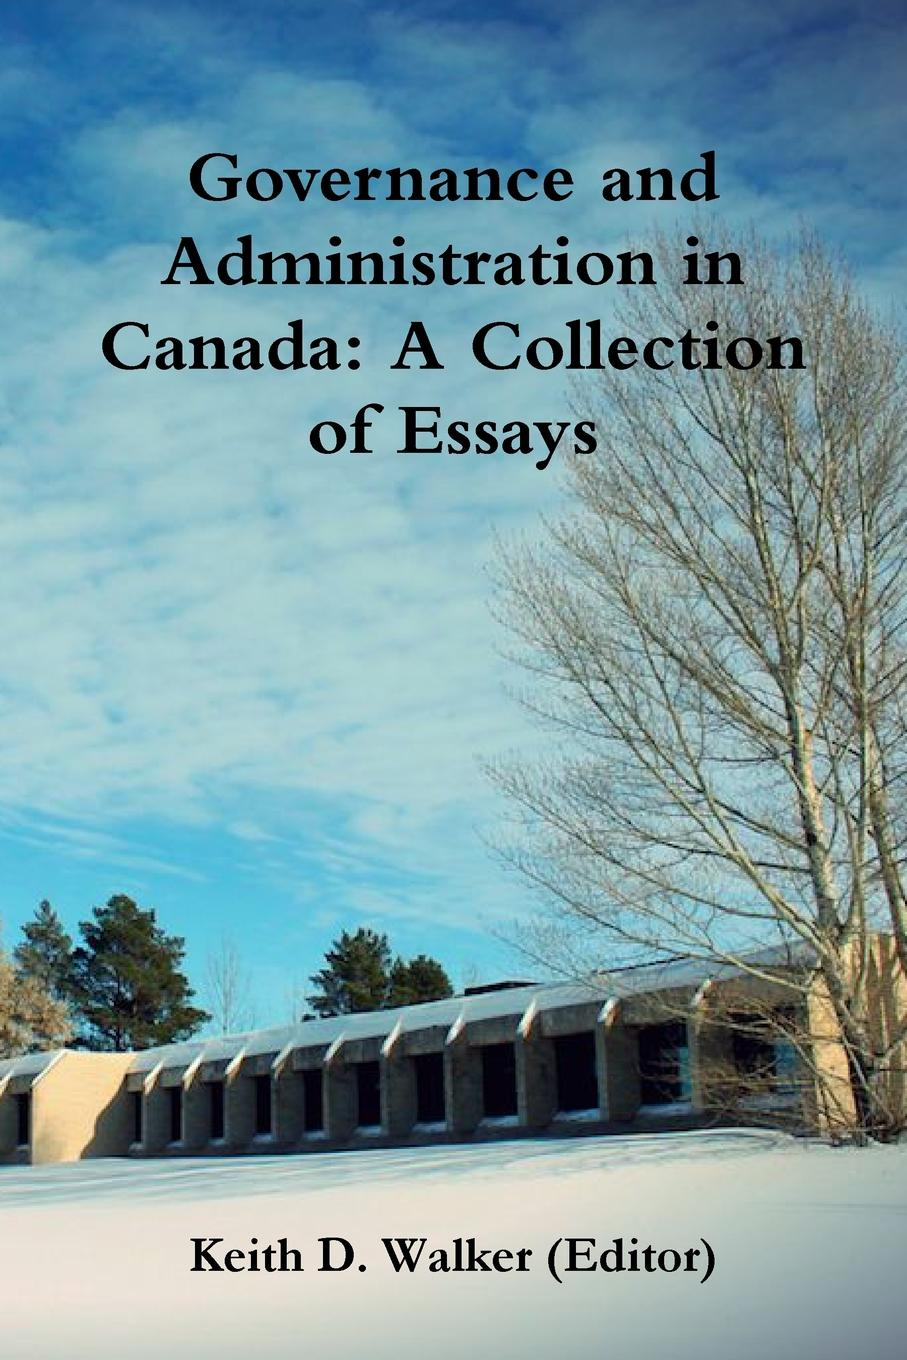 Keith D. Walker Governance and Administration in Canada. Collection of Essays th colpitts granger anthony hammond william d evans a collection of statutes connected with the general administration of the law volume 9